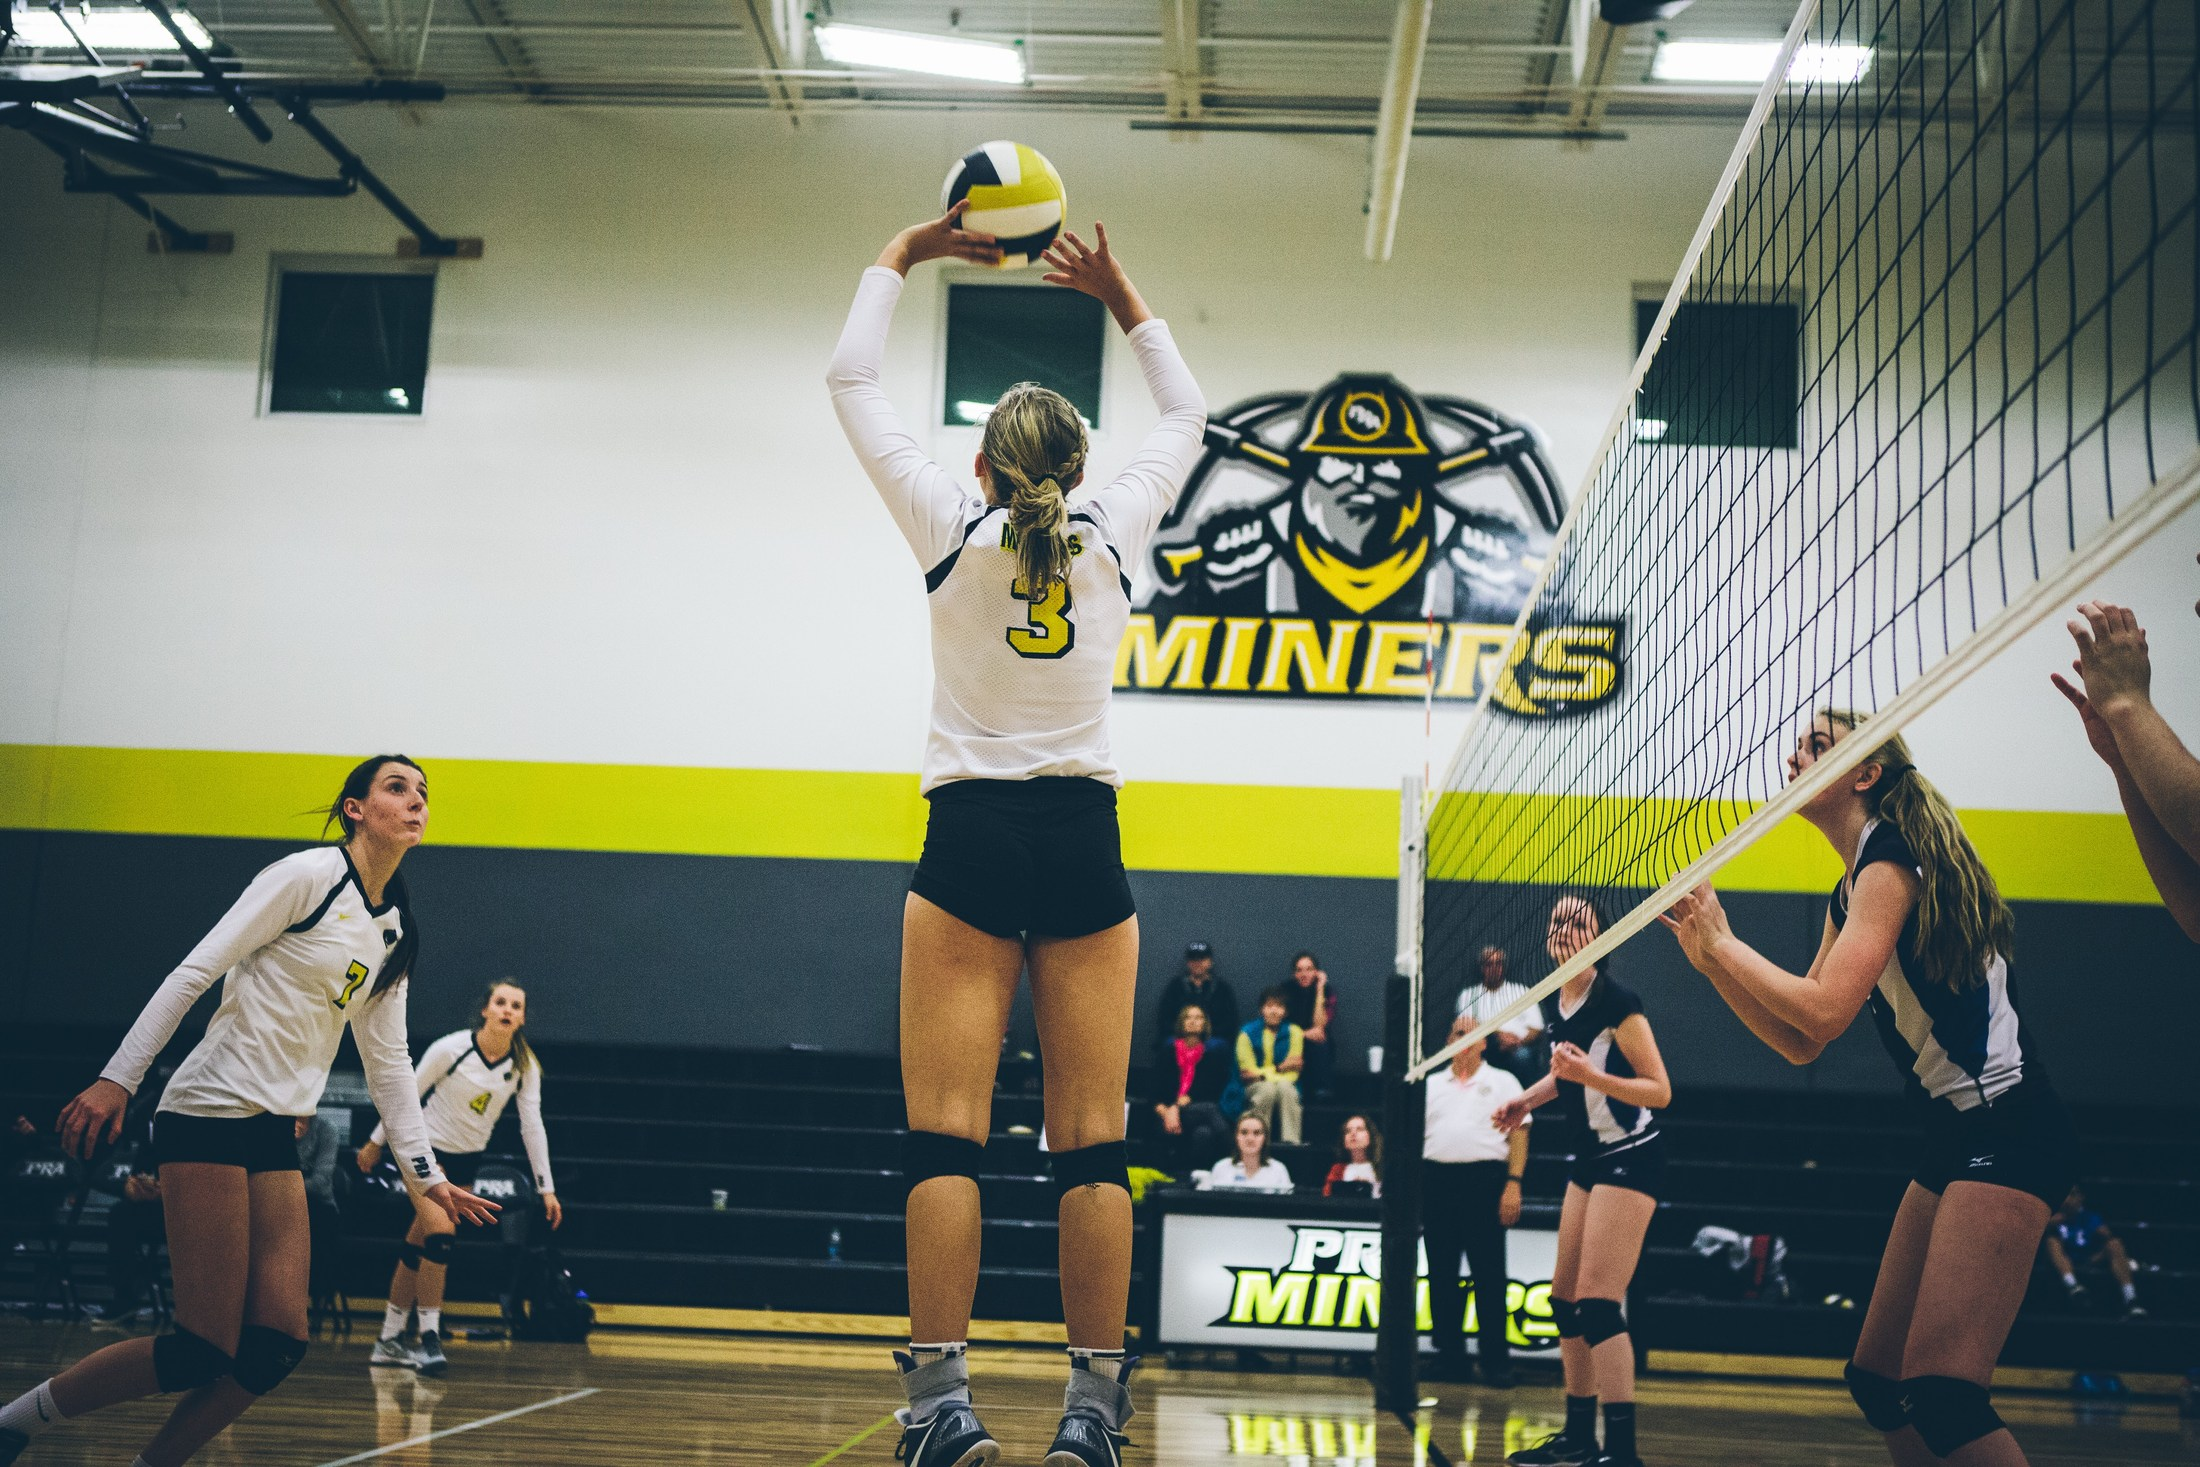 Volleyball player creating a set